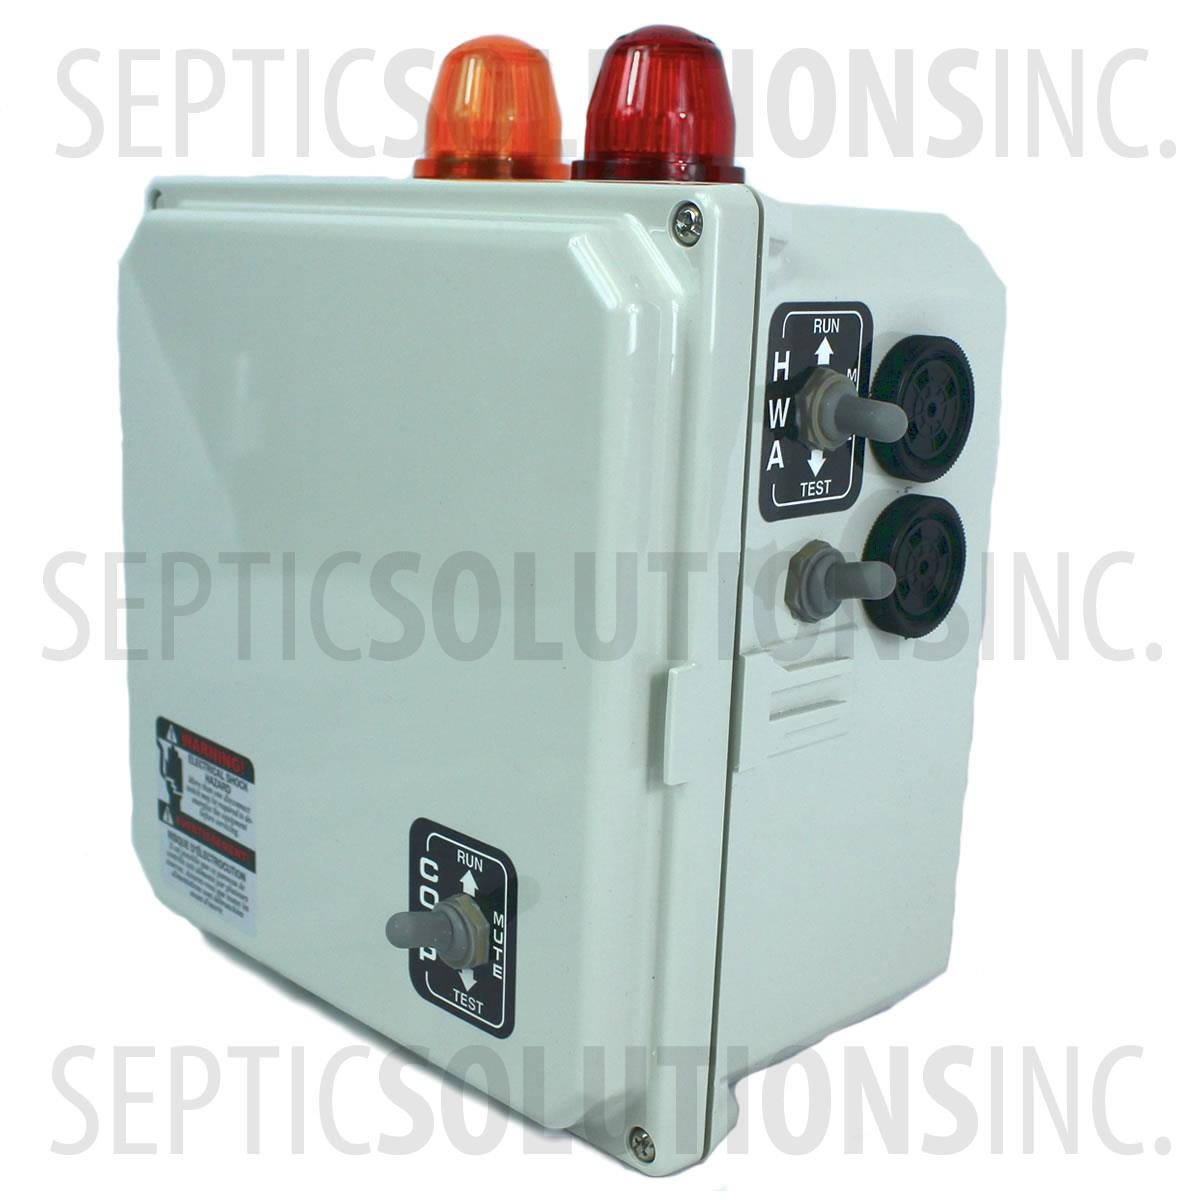 50B138_2?w=300 aerobic septic system control panels and alarms free shipping  at edmiracle.co